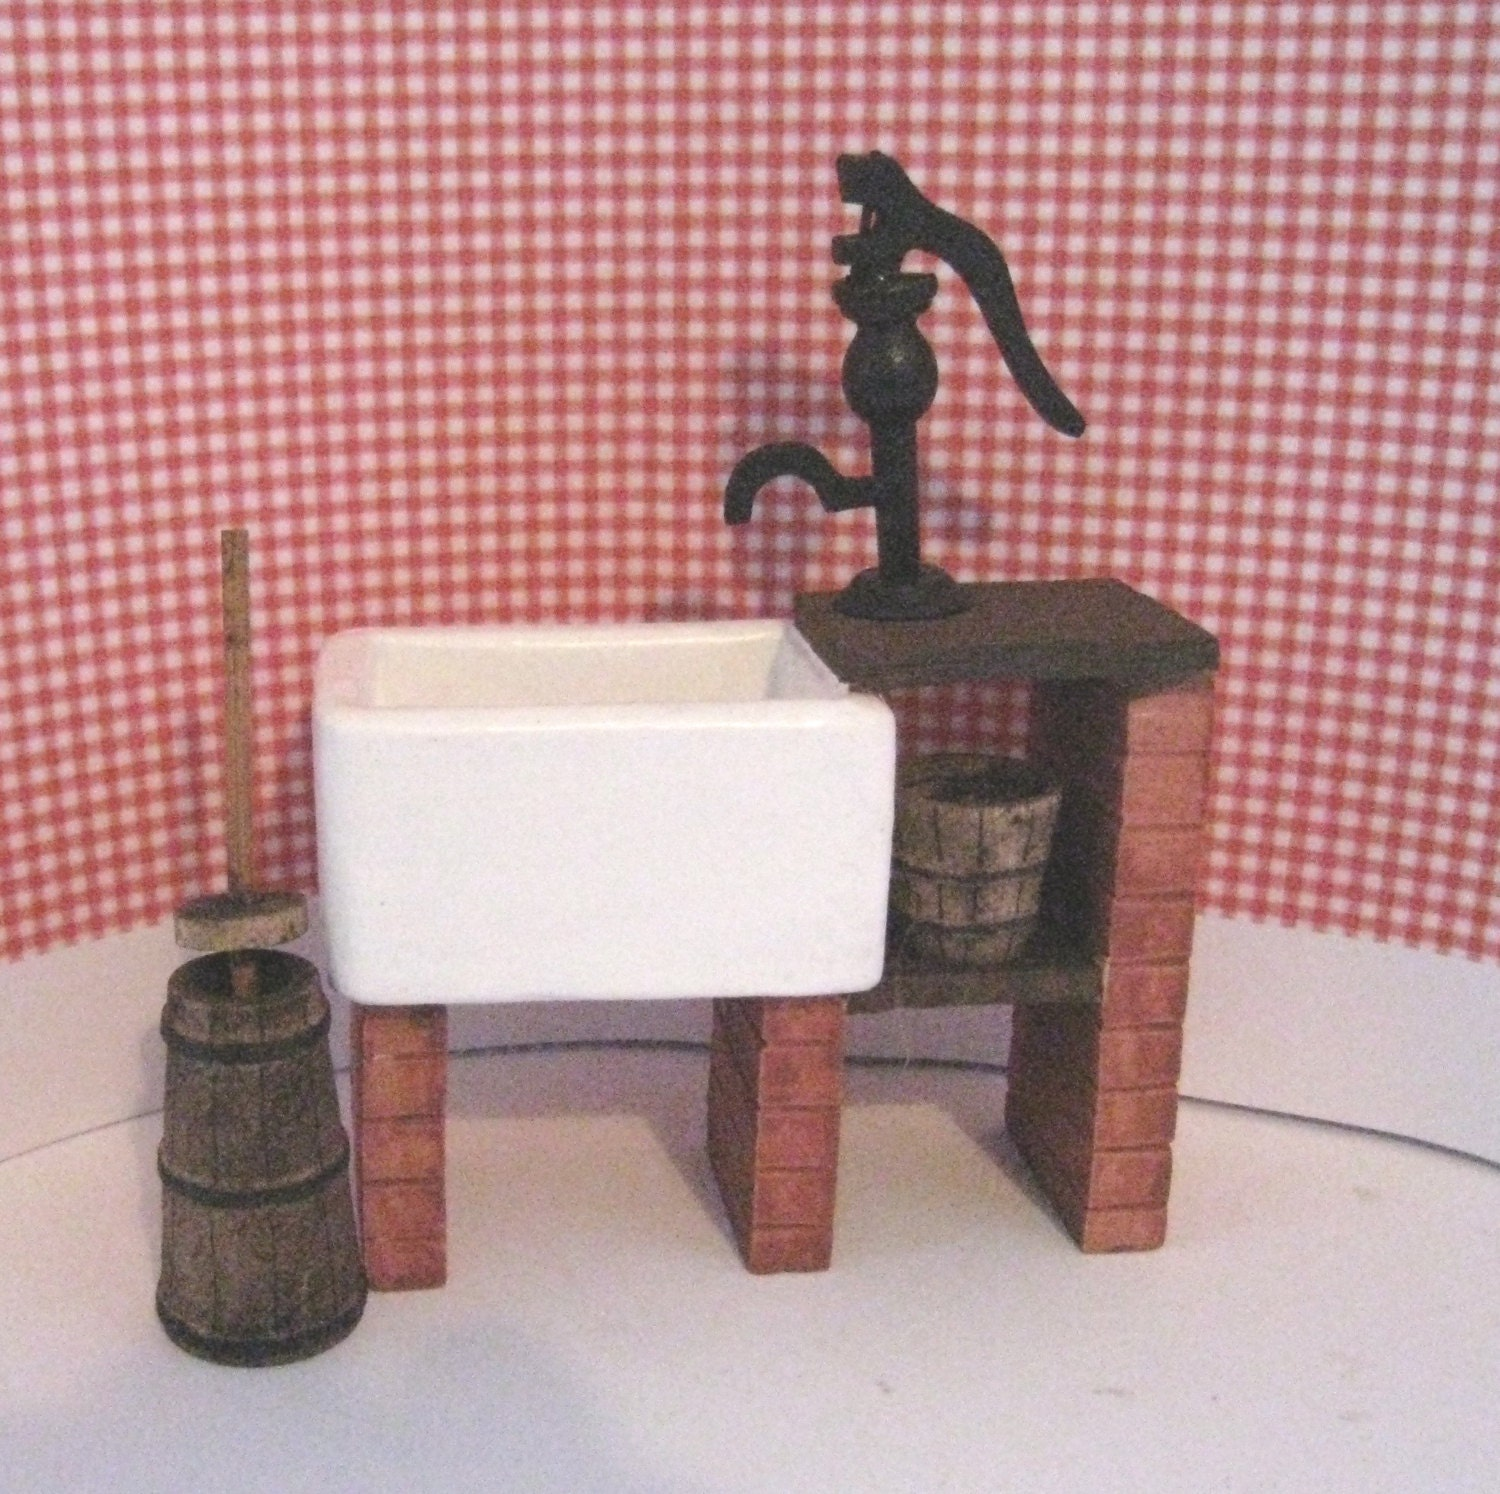 Dollhouse sink Country style sink stone sink kitchen accessories a twelfth scale dollhouse miniature